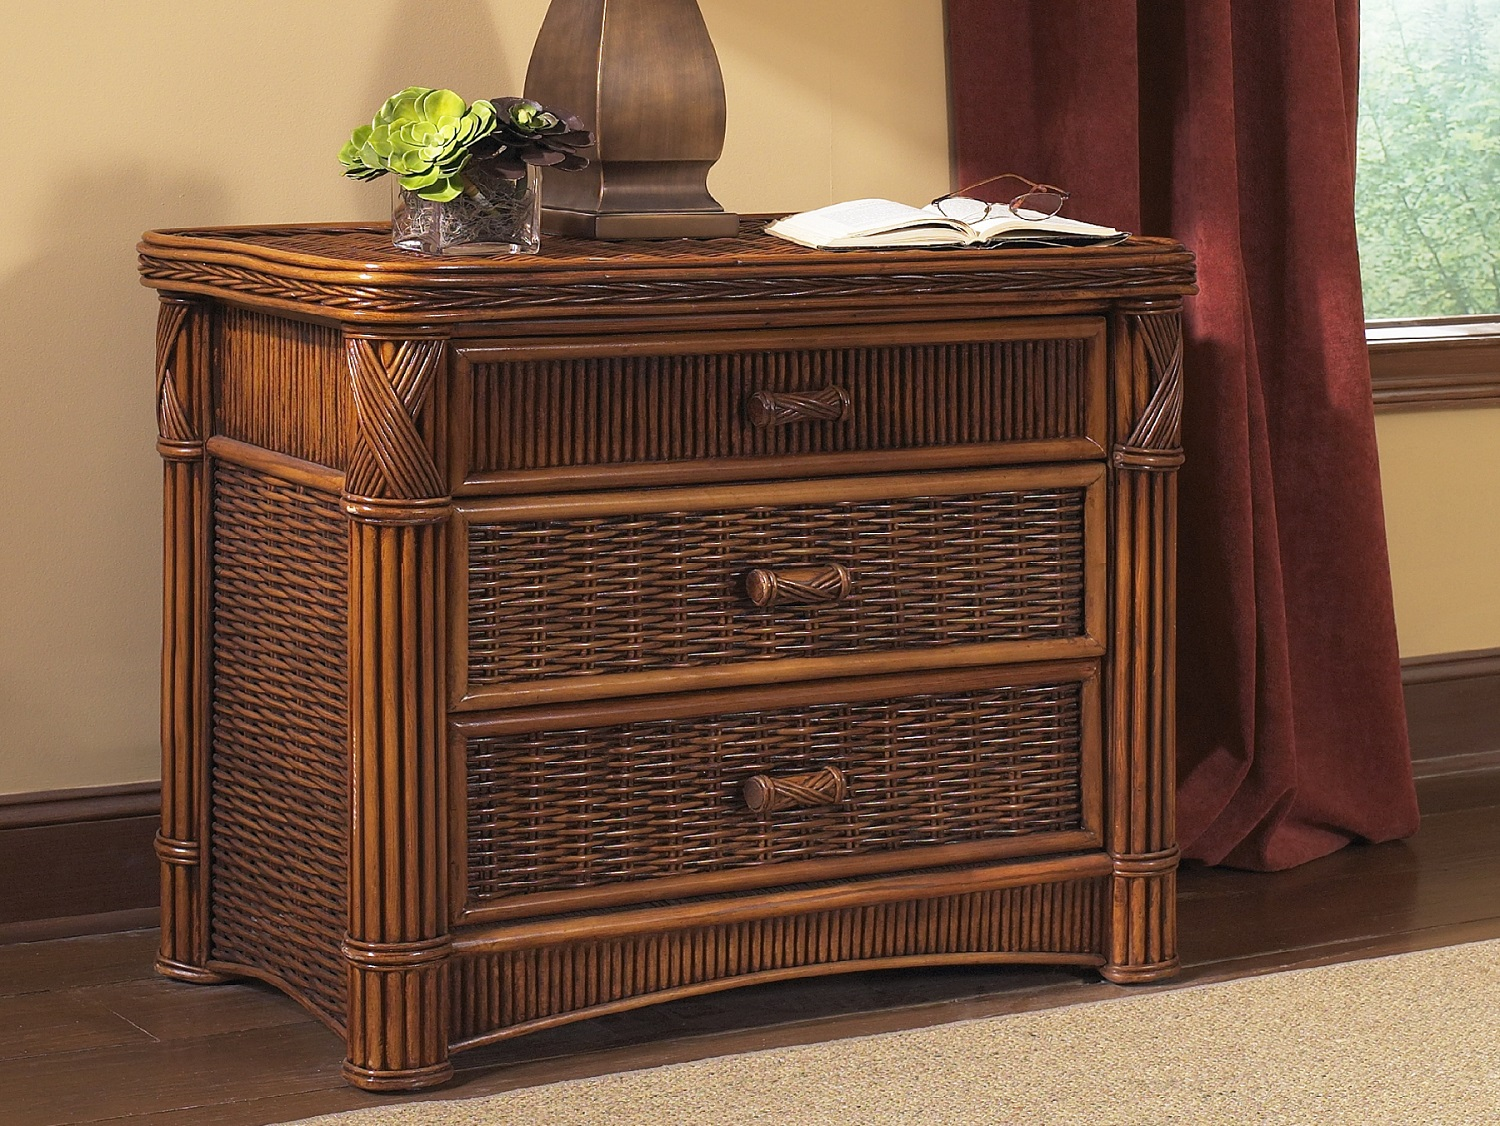 Image of: Wicker Trunks